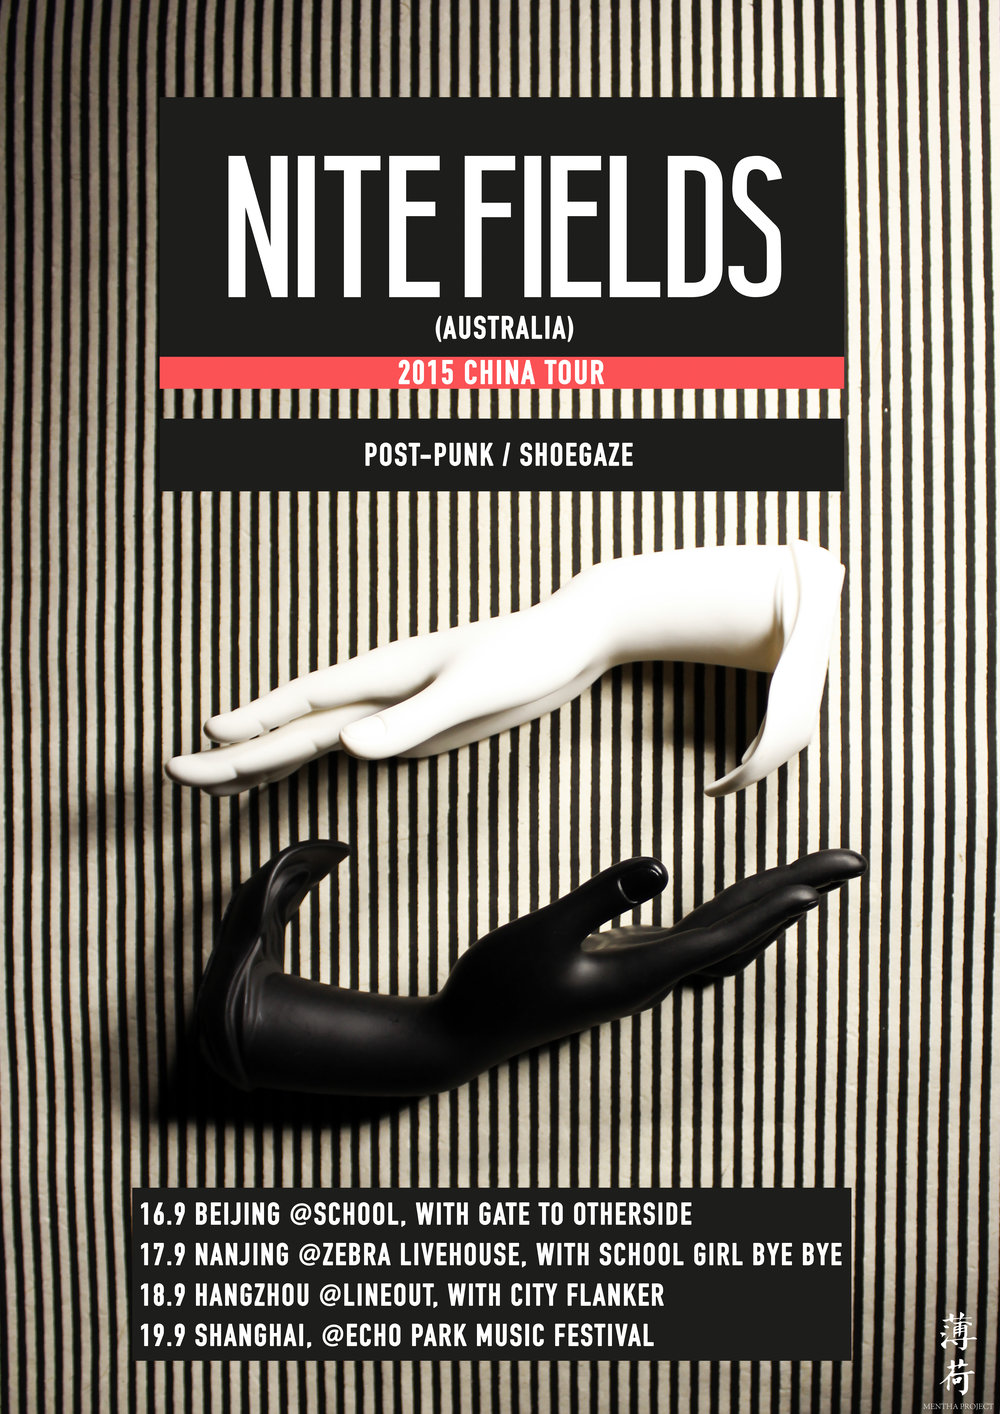 Nite Fields 2015 China Tour